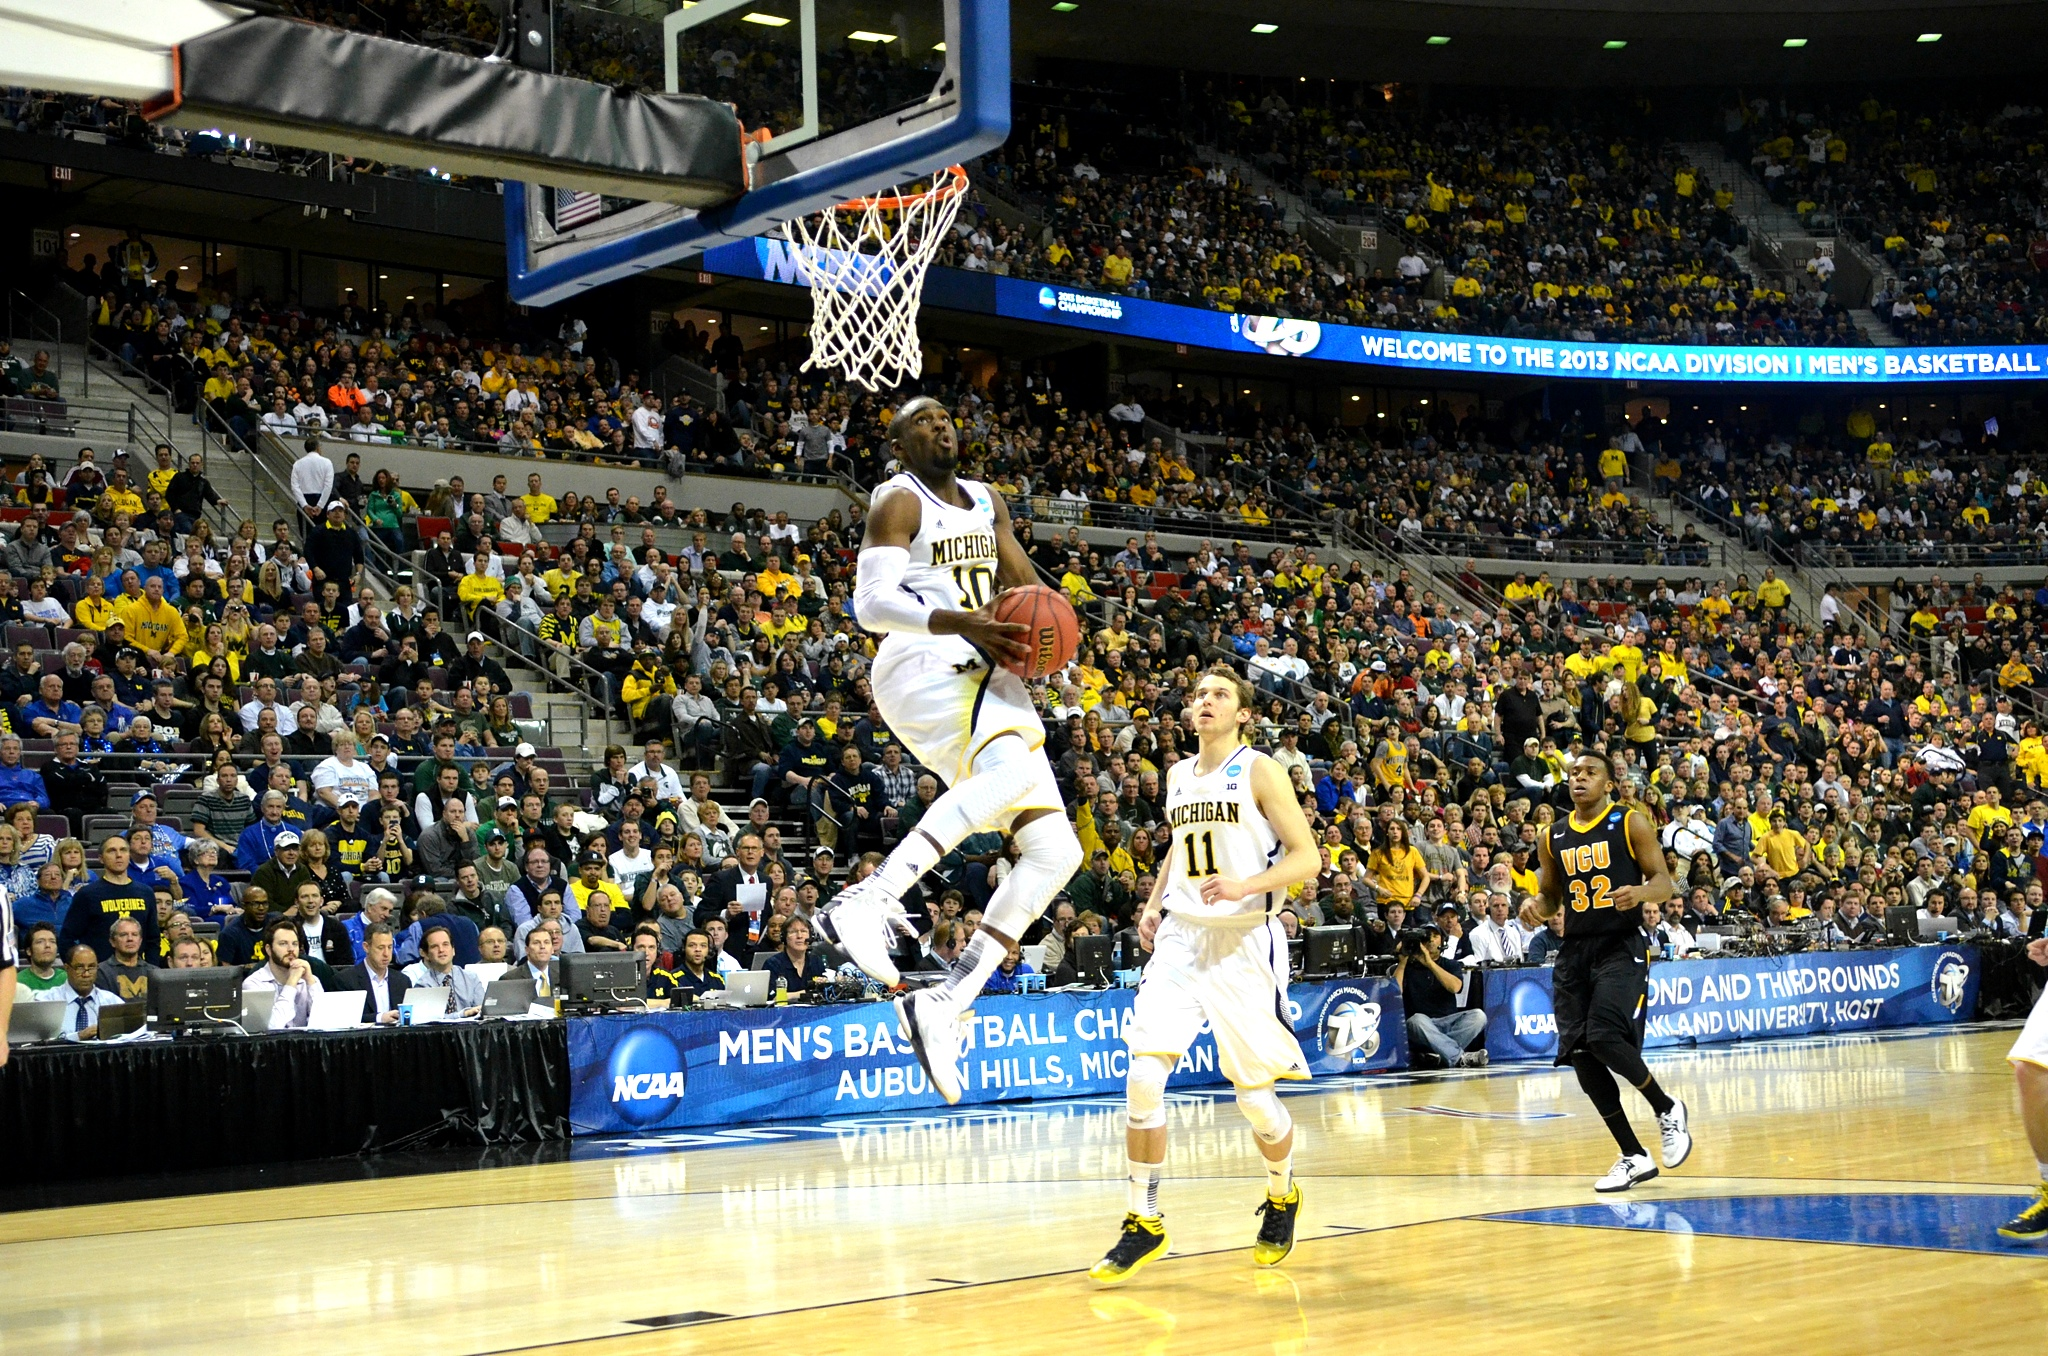 Tim Hardaway Jr. with the show time dunk against VCU